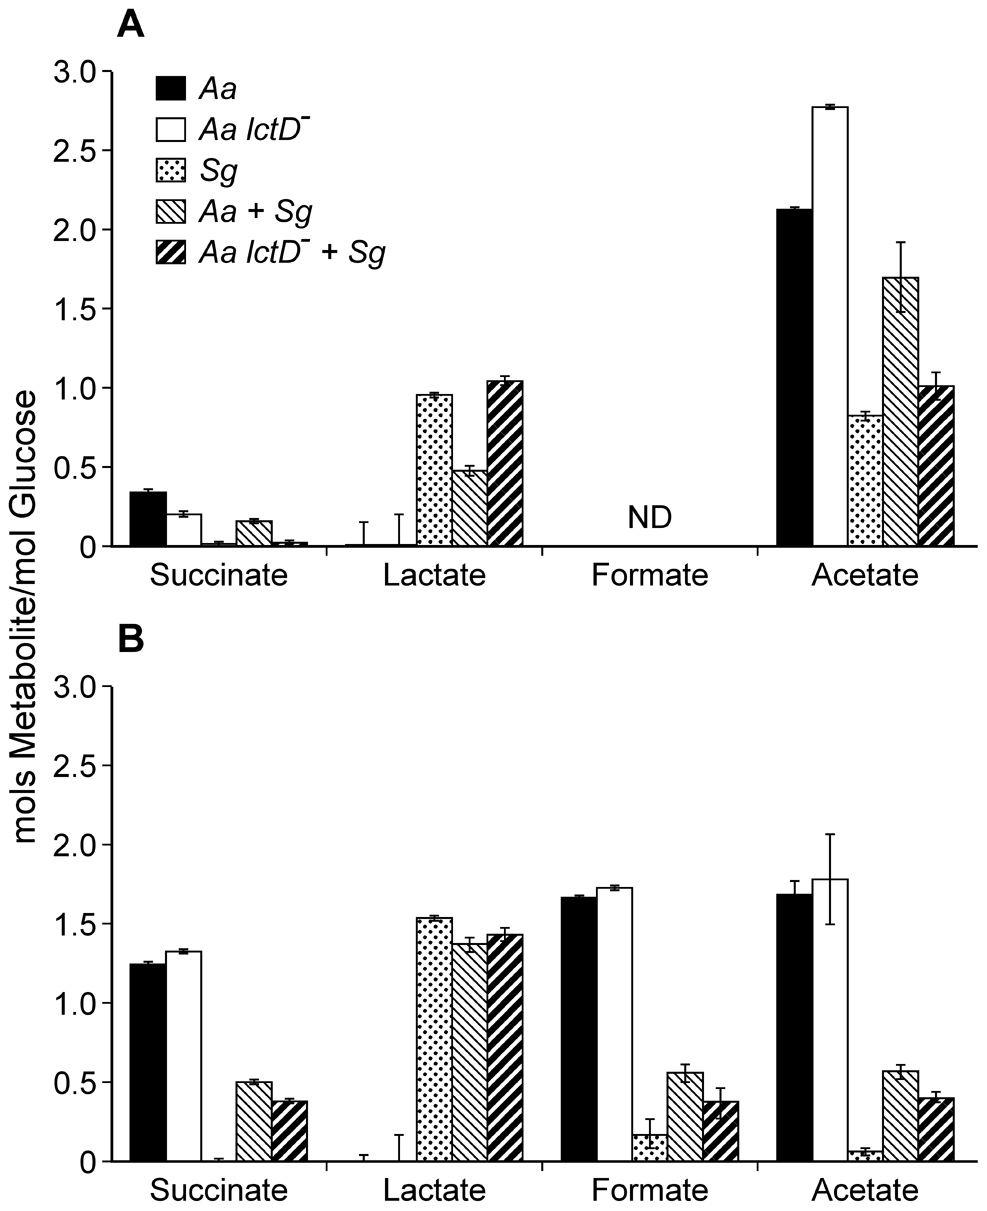 Metabolite production by <i>A. actinomycetemcomitans</i>, <i>A. actinomycetemcomitans lctD</i><sup>-</sup>, and <i>S. gordonii</i> in aerobic or anaerobic co-cultures.